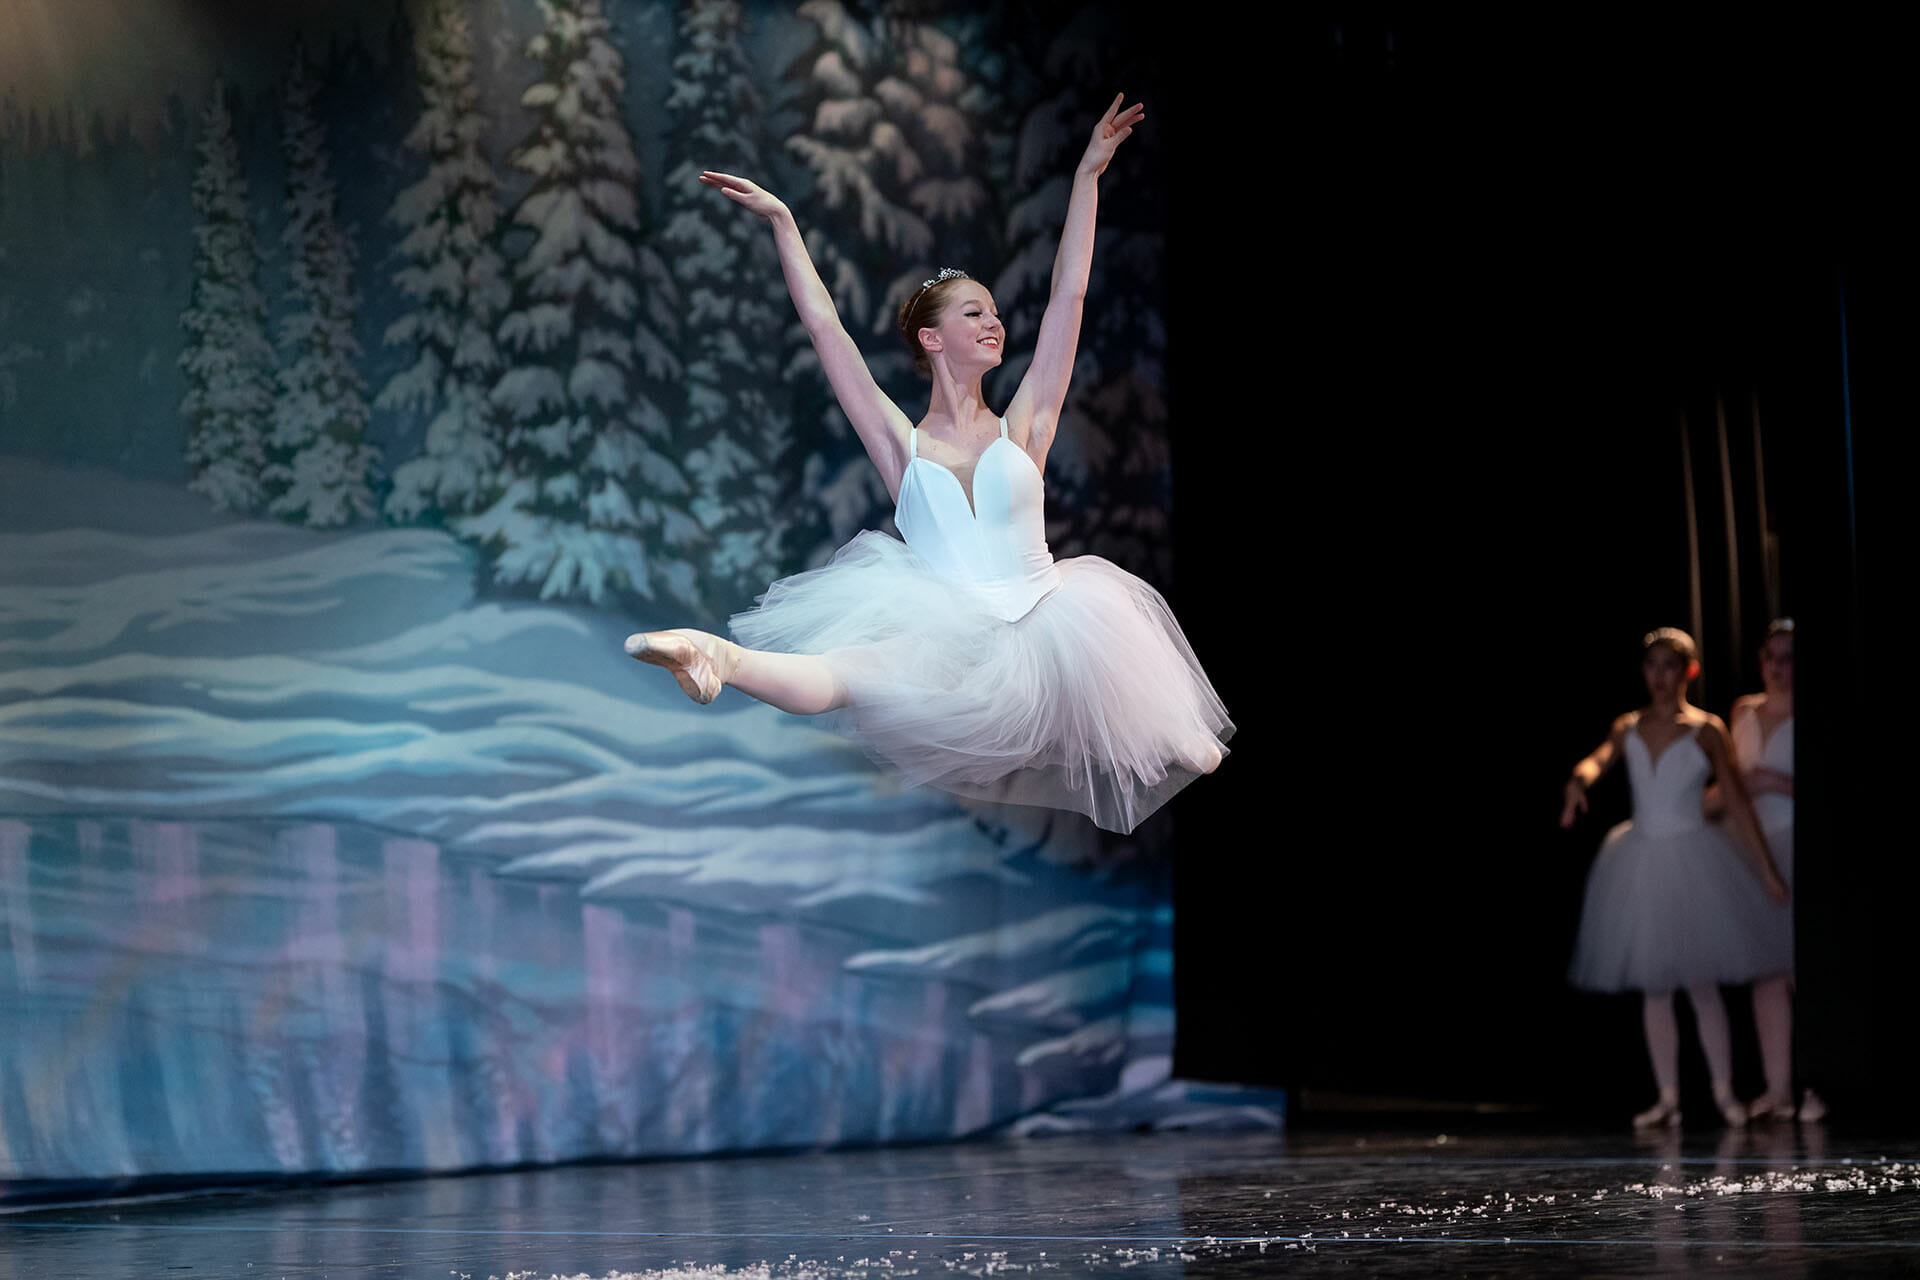 Dance classes in Northern Virginia - Lasley Centre for the Performing Arts, Nutcracker Performance